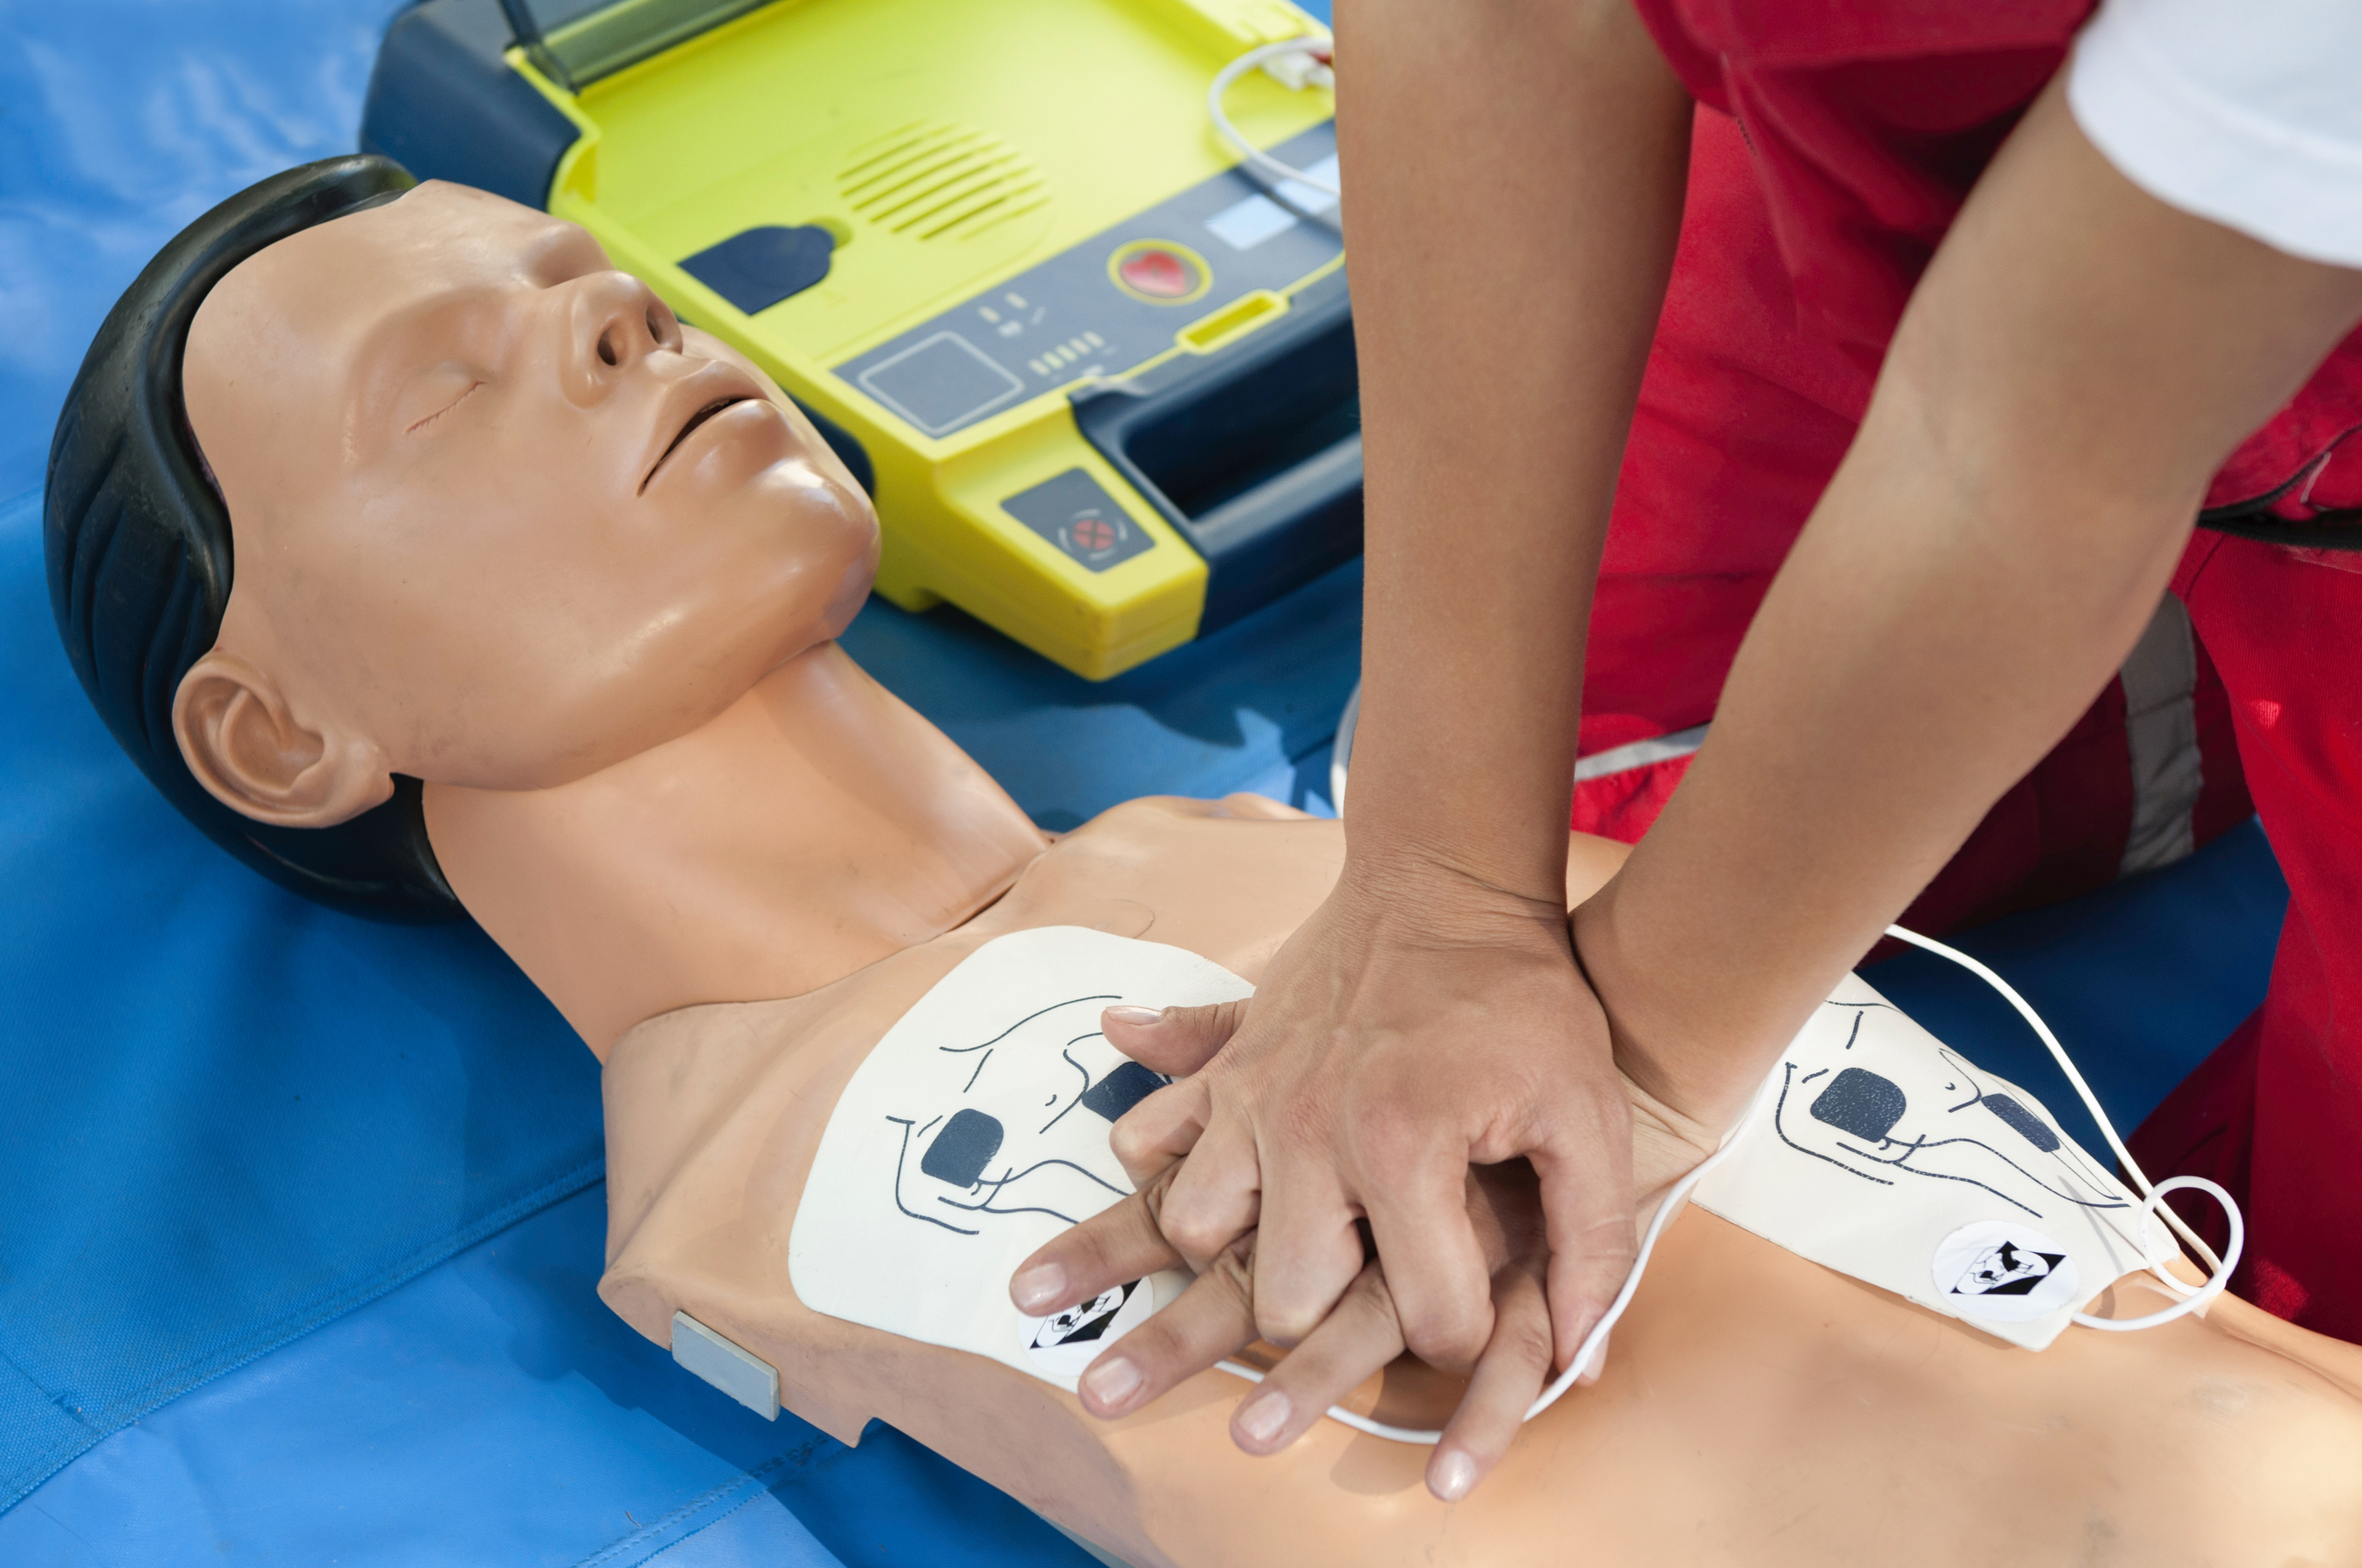 CPR training - Chest compressions combined with AED defibrillator operation performed on a CPR dummy. Focus on hands